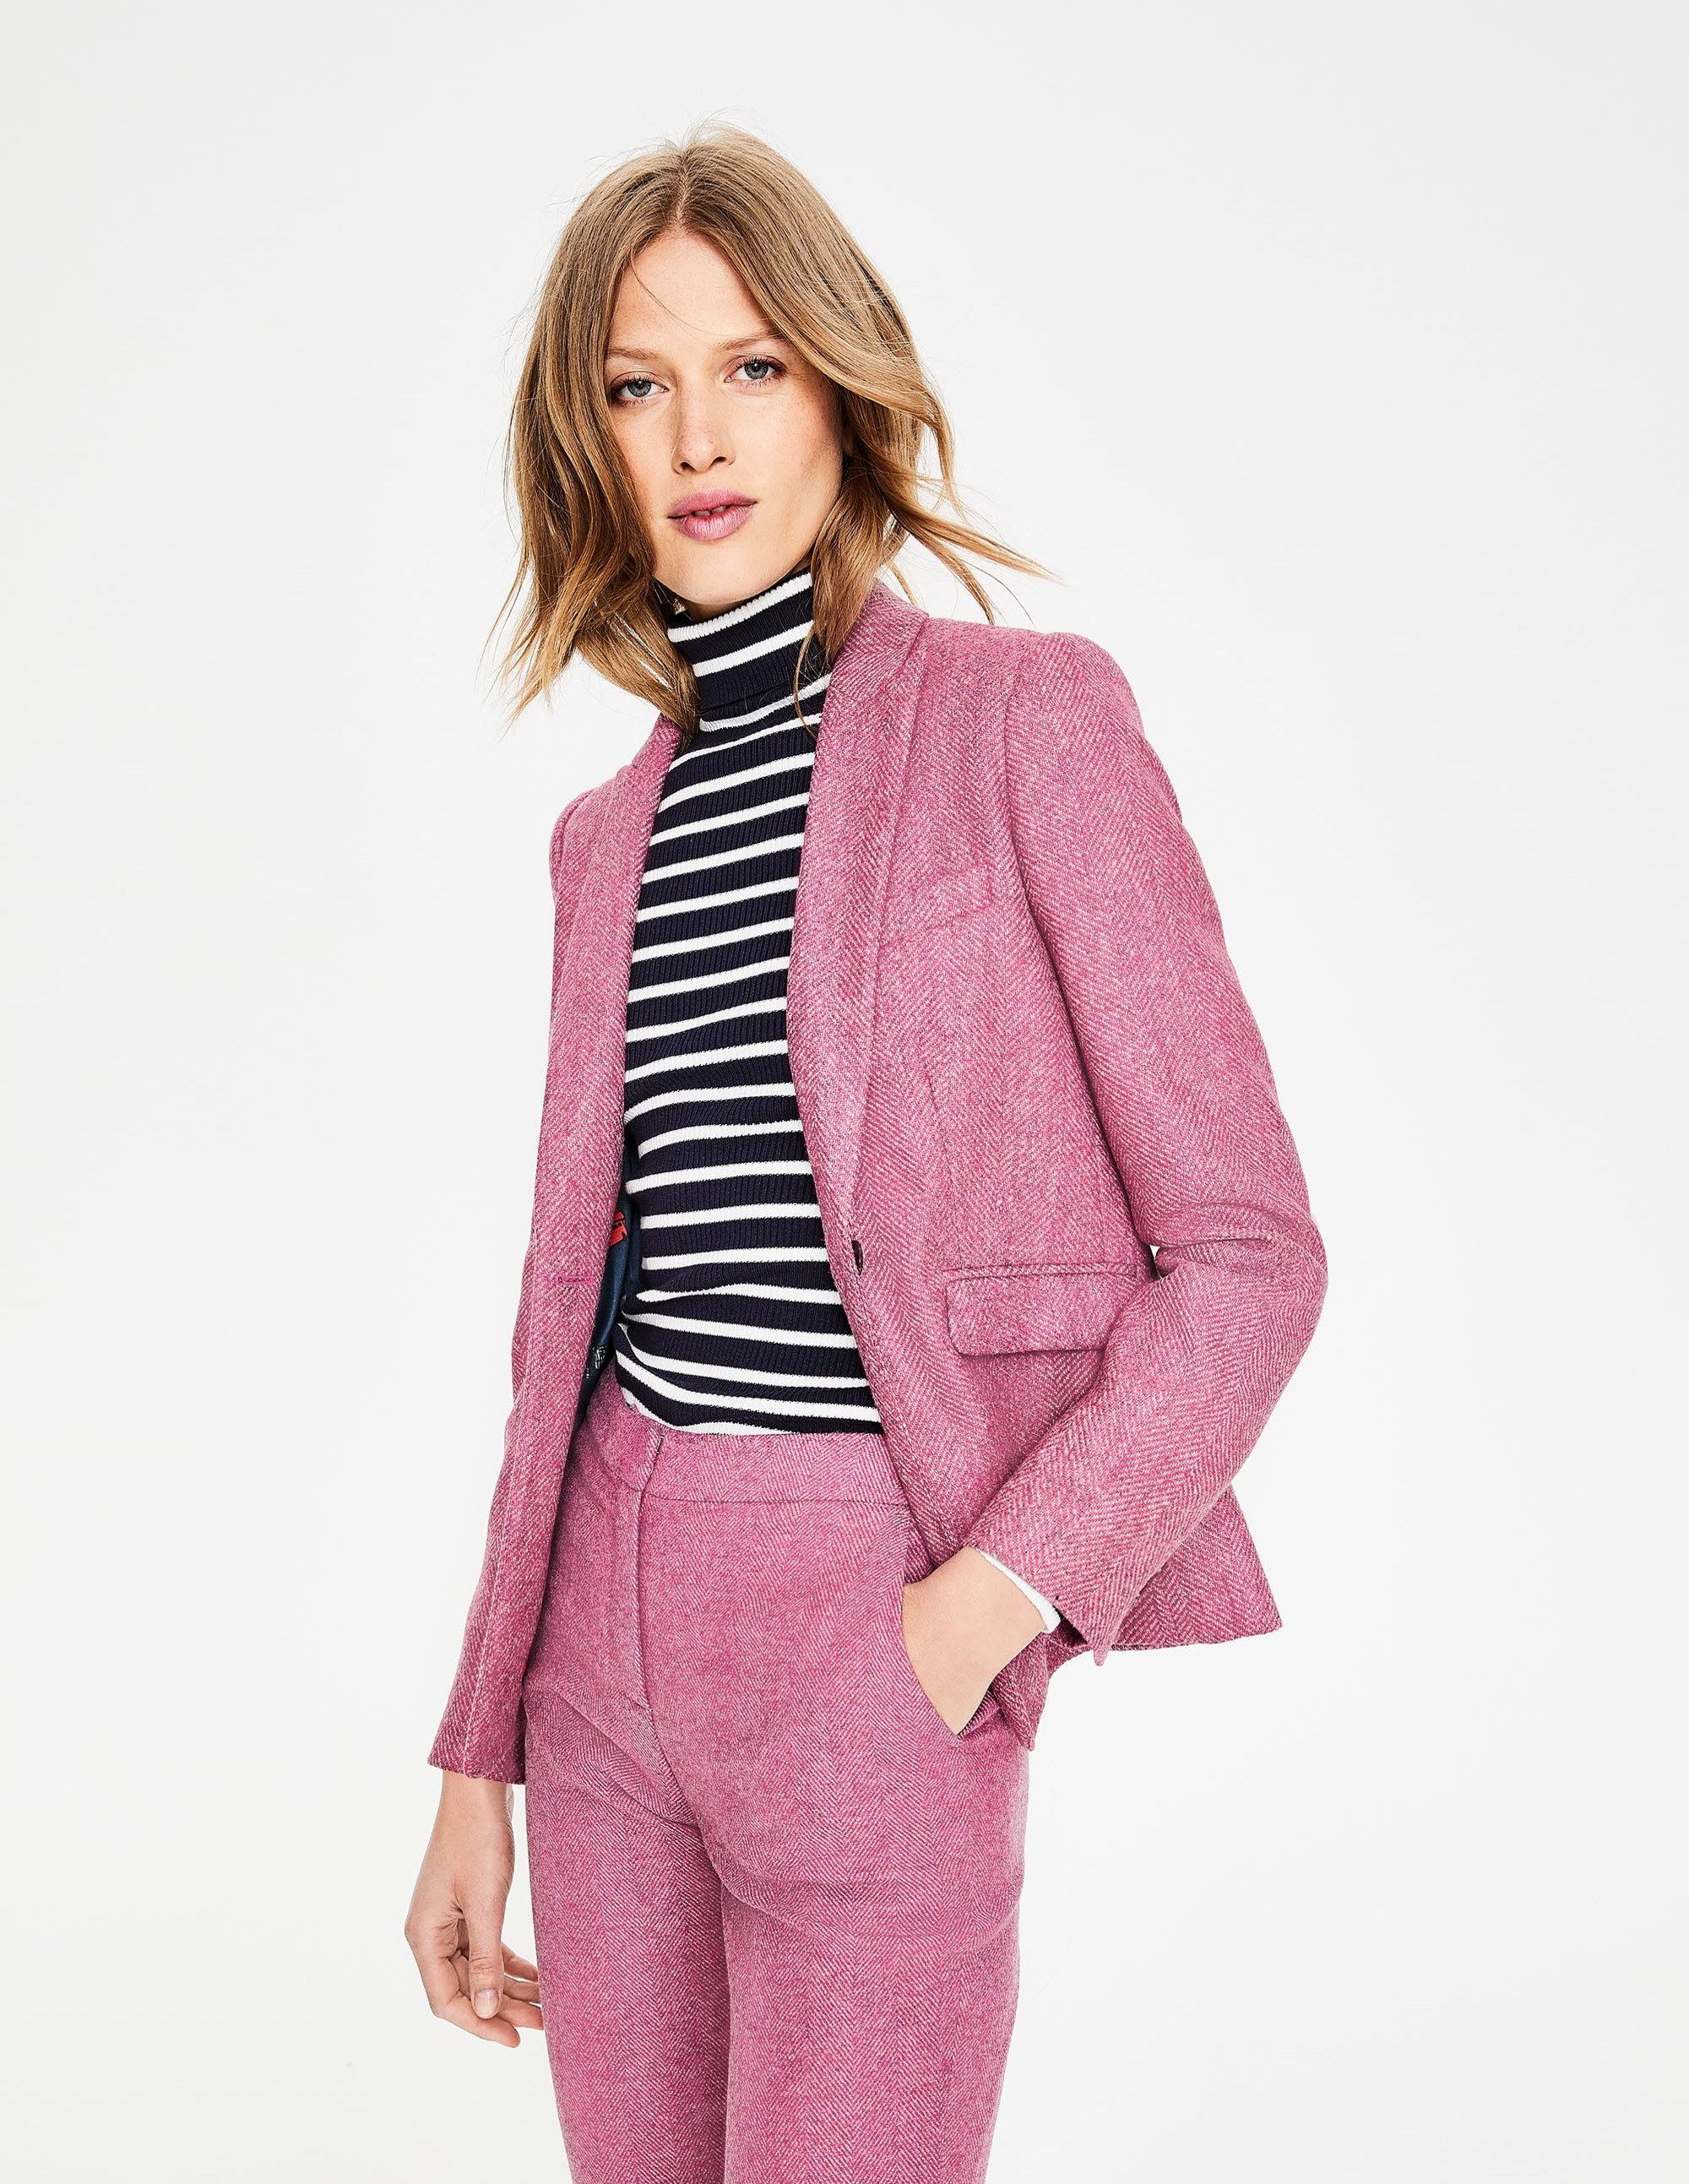 new season boden suit